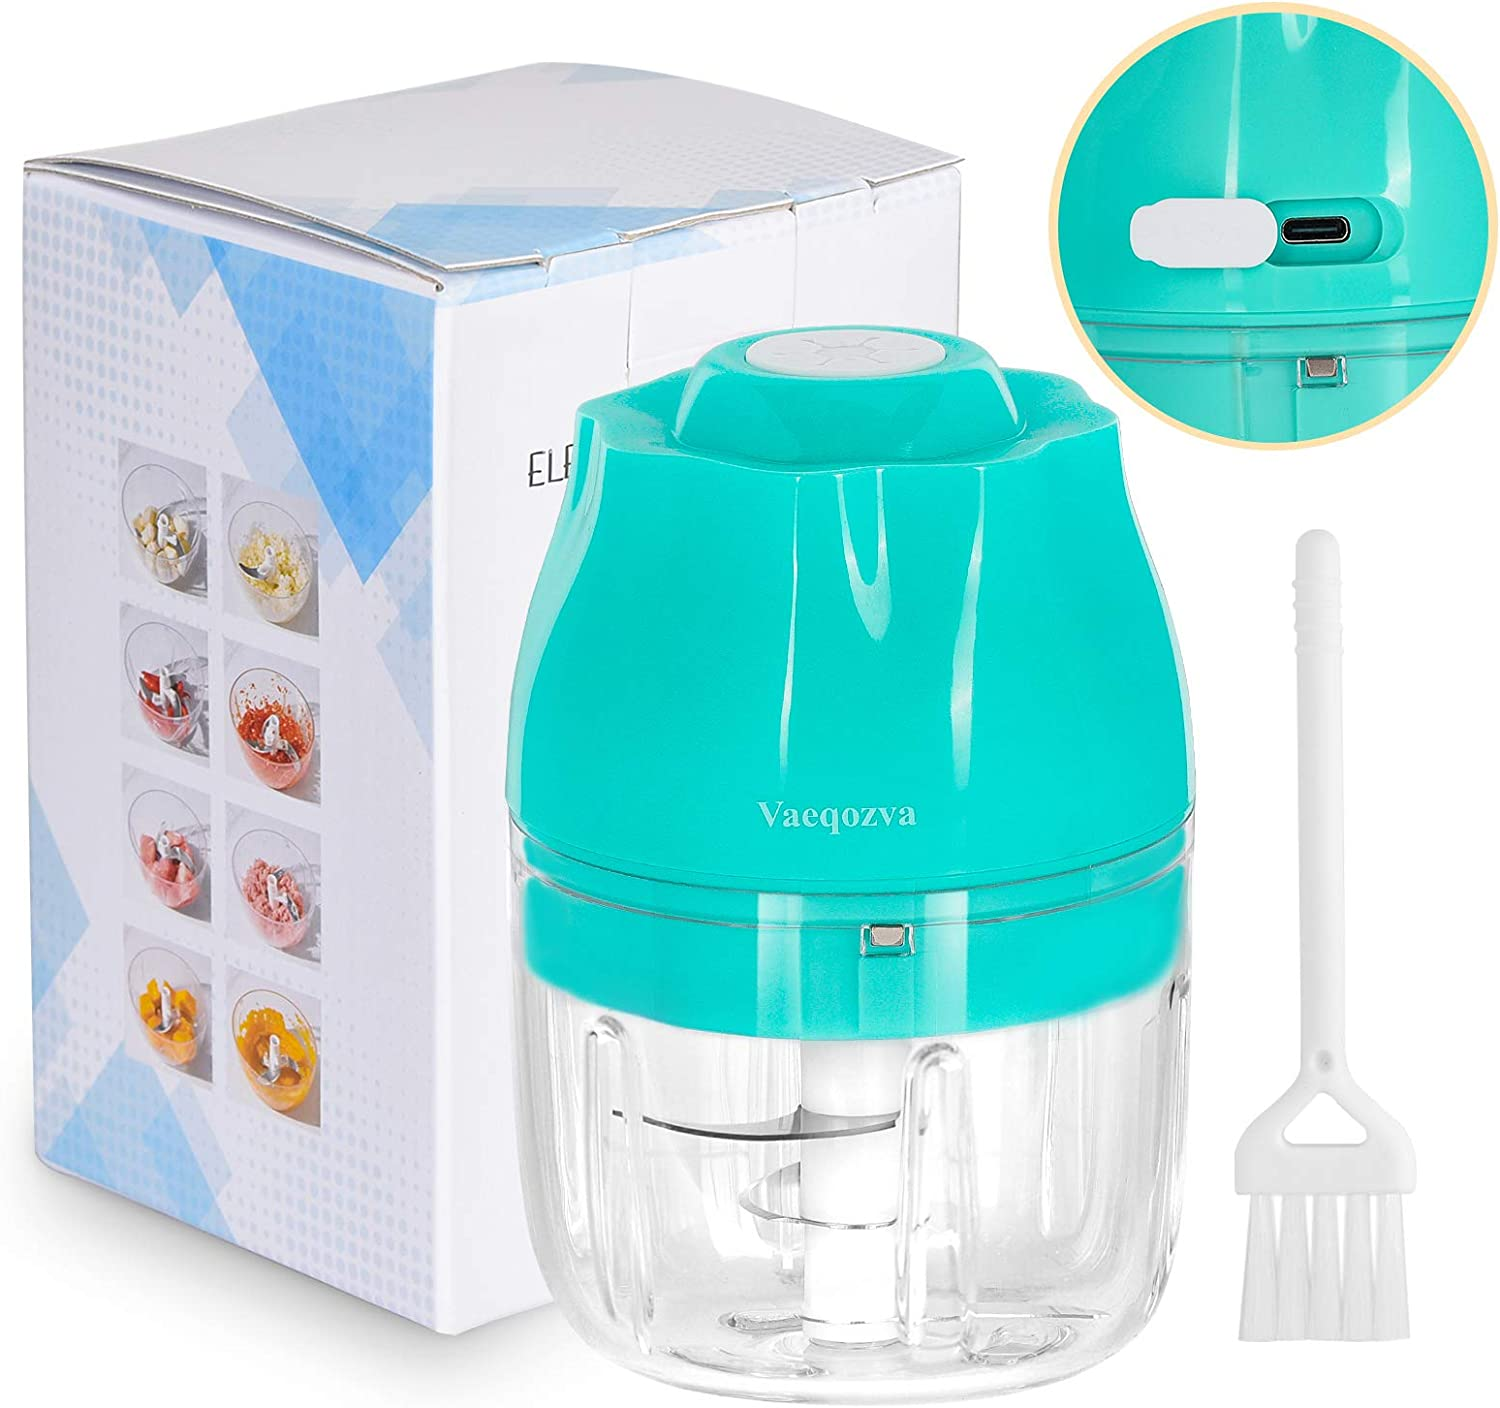 Electric Mini Food Chopper Vaeqozva Portable Wireless Mincer Blender Mixer USB Rechargeable Food Processor for Garlic Baby Food Vegetable Meat Fruits Onions Puree 8.45oz-Blue